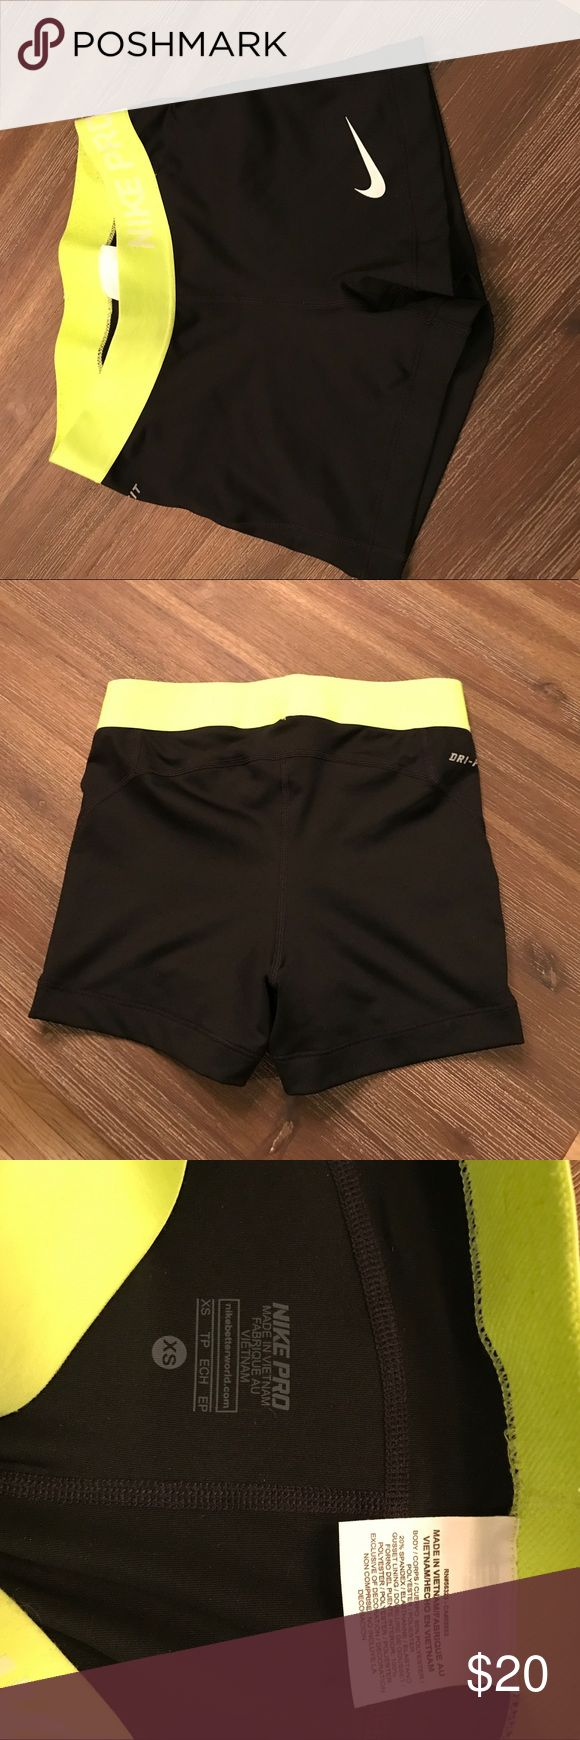 Nike black spandex shorts with lime green waist In great condition wore once Nike Pro black spandex shorts with lime green waist band perfect for yoga or running extremely comfortable Nike Shorts